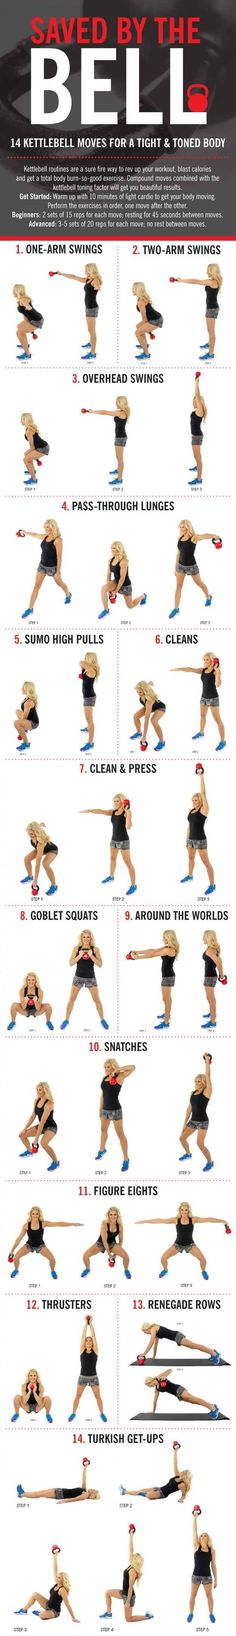 Understand what kettlebells can do for you and how to use them.